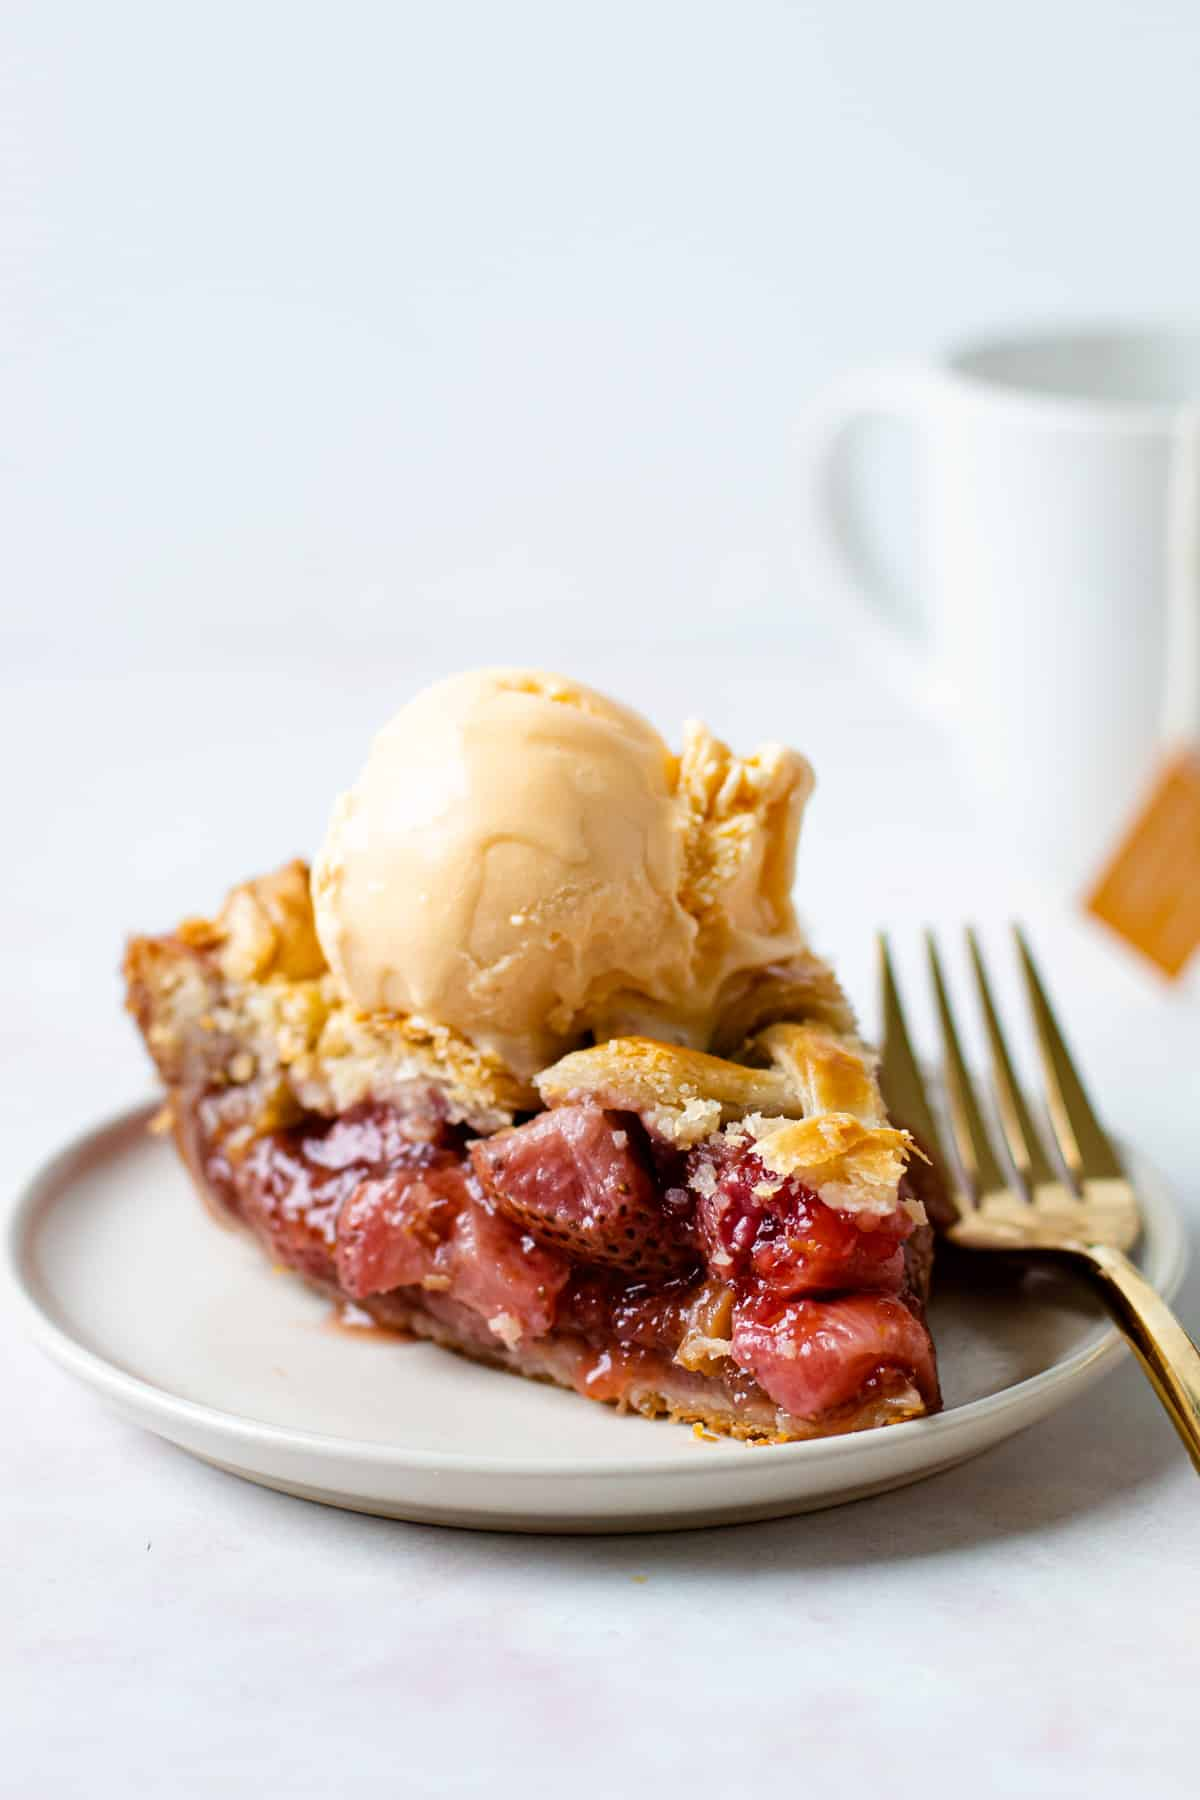 A slice of strawberry rhubarb pie with ice cream on it on a place.